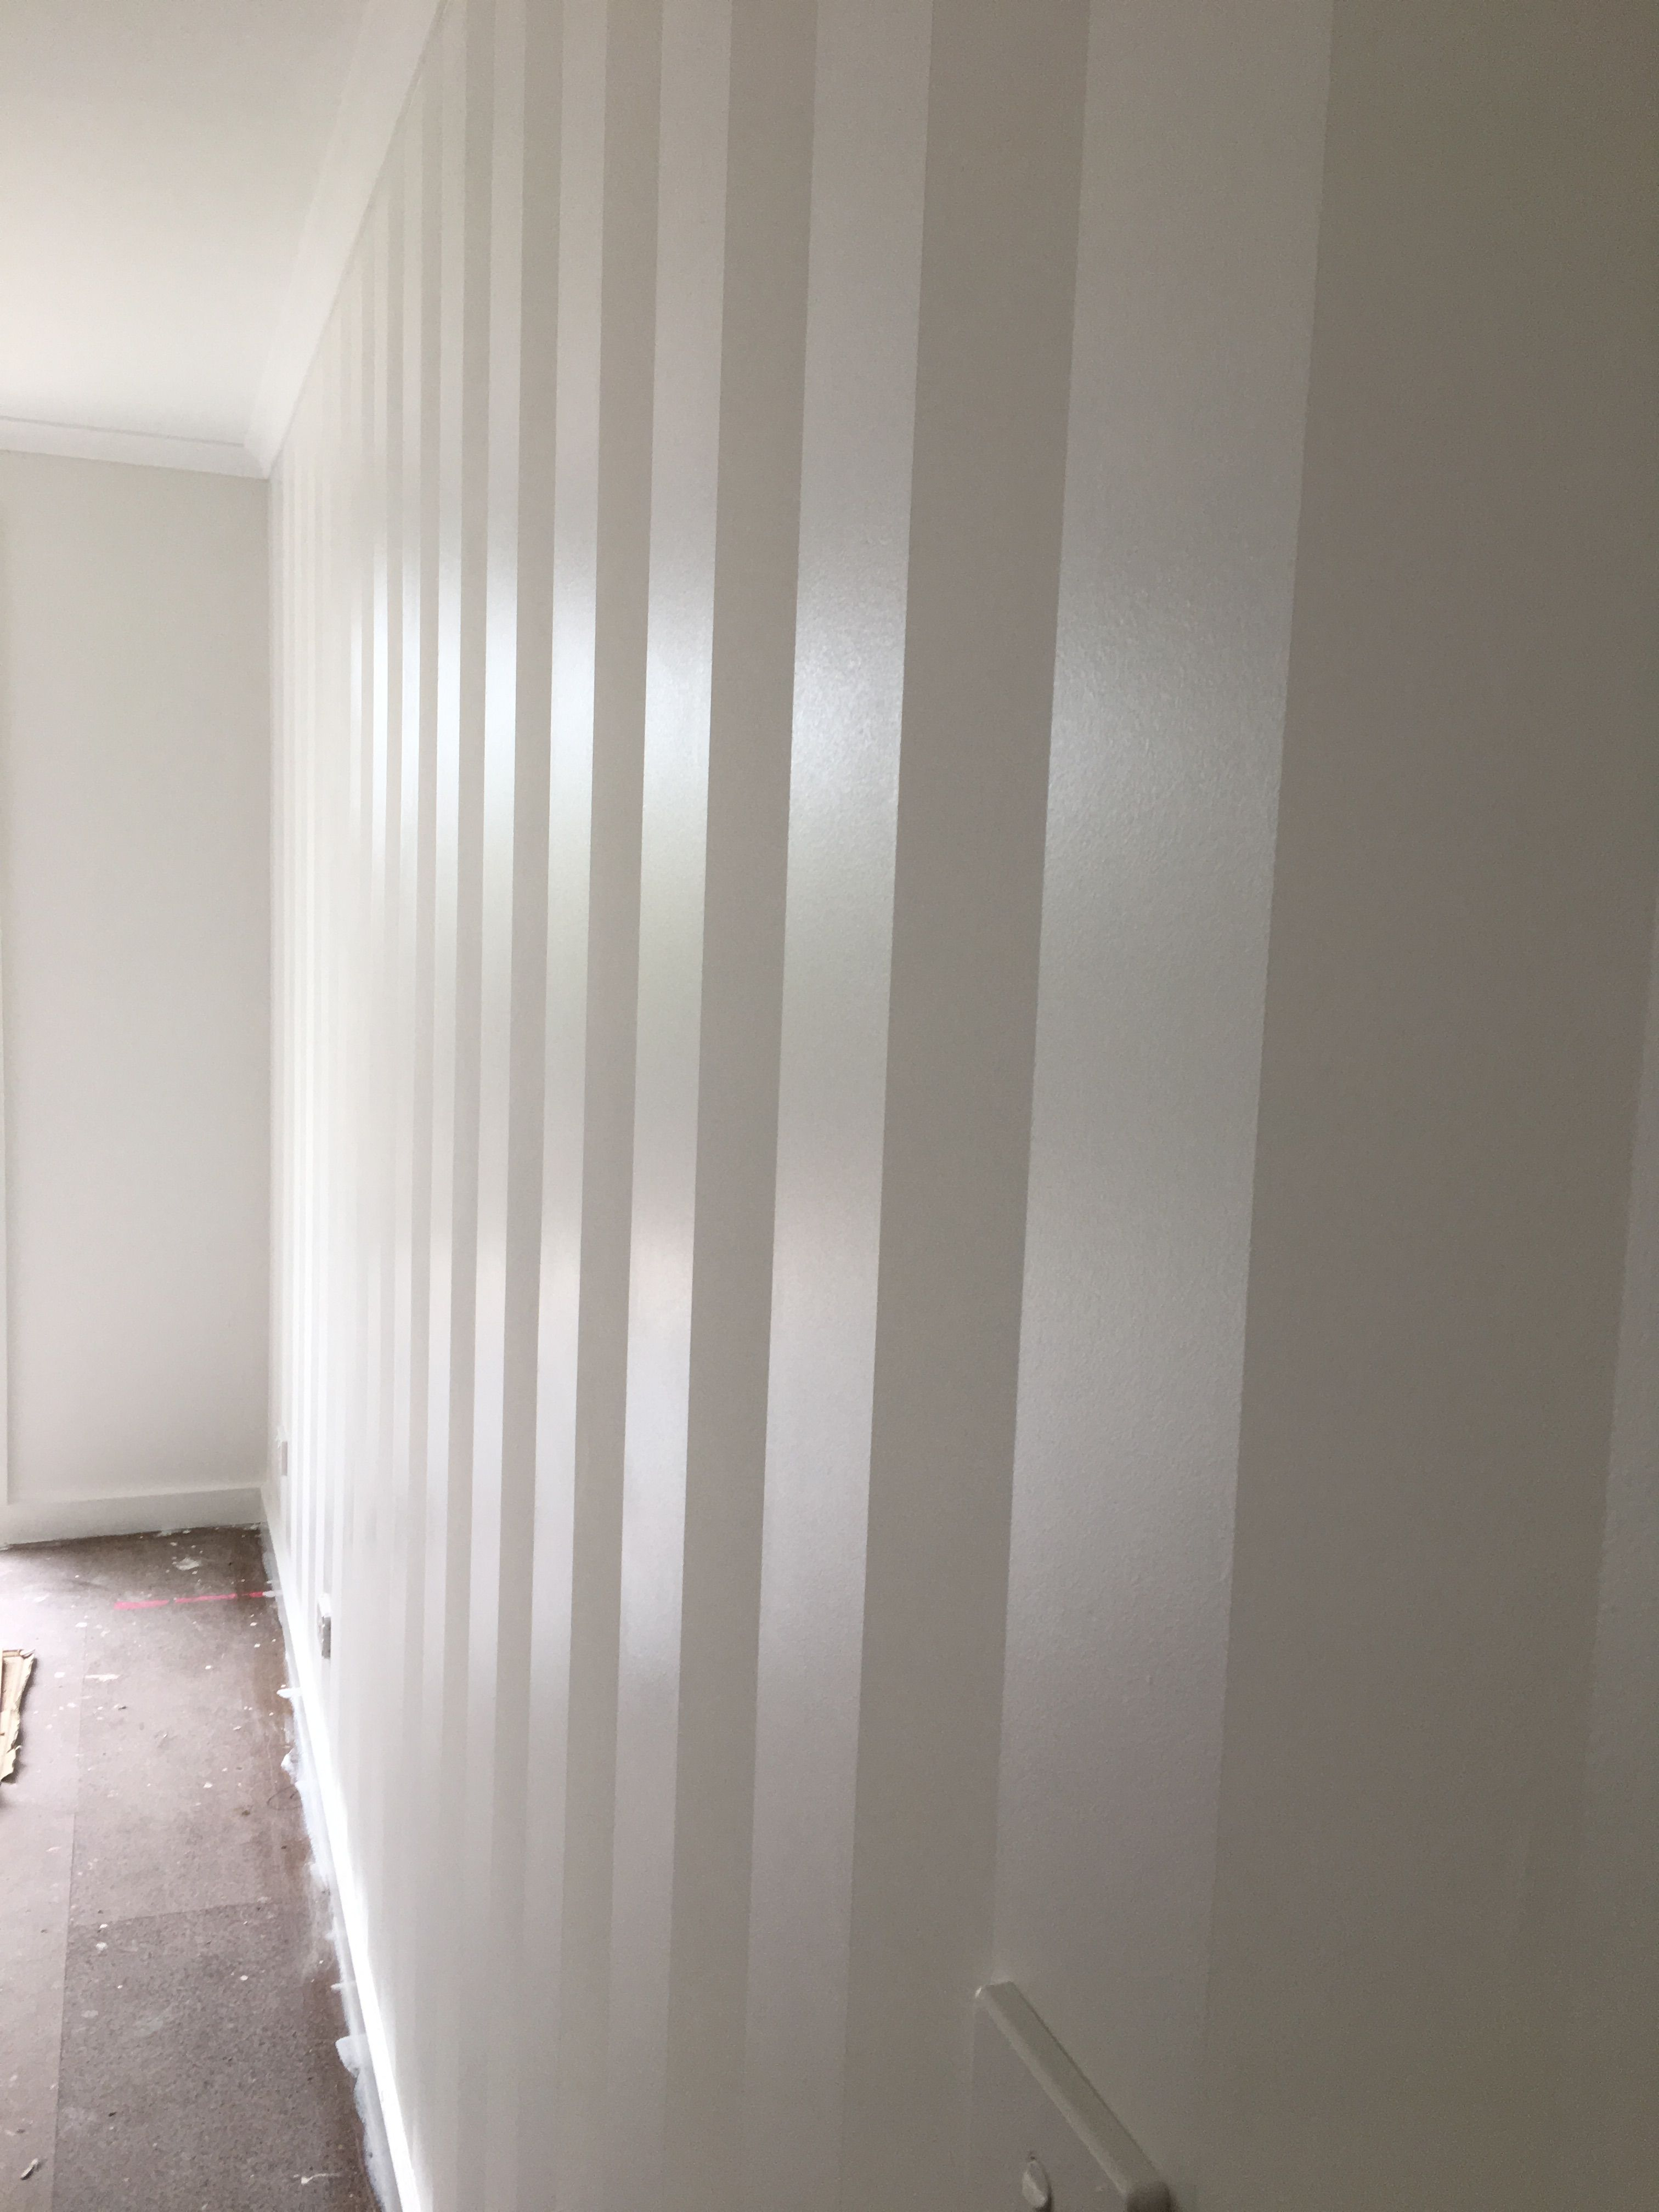 White Matt Paint And Semi Gloss White Paint Stripes Painting Stripes On Walls Glitter Paint For Walls Striped Walls